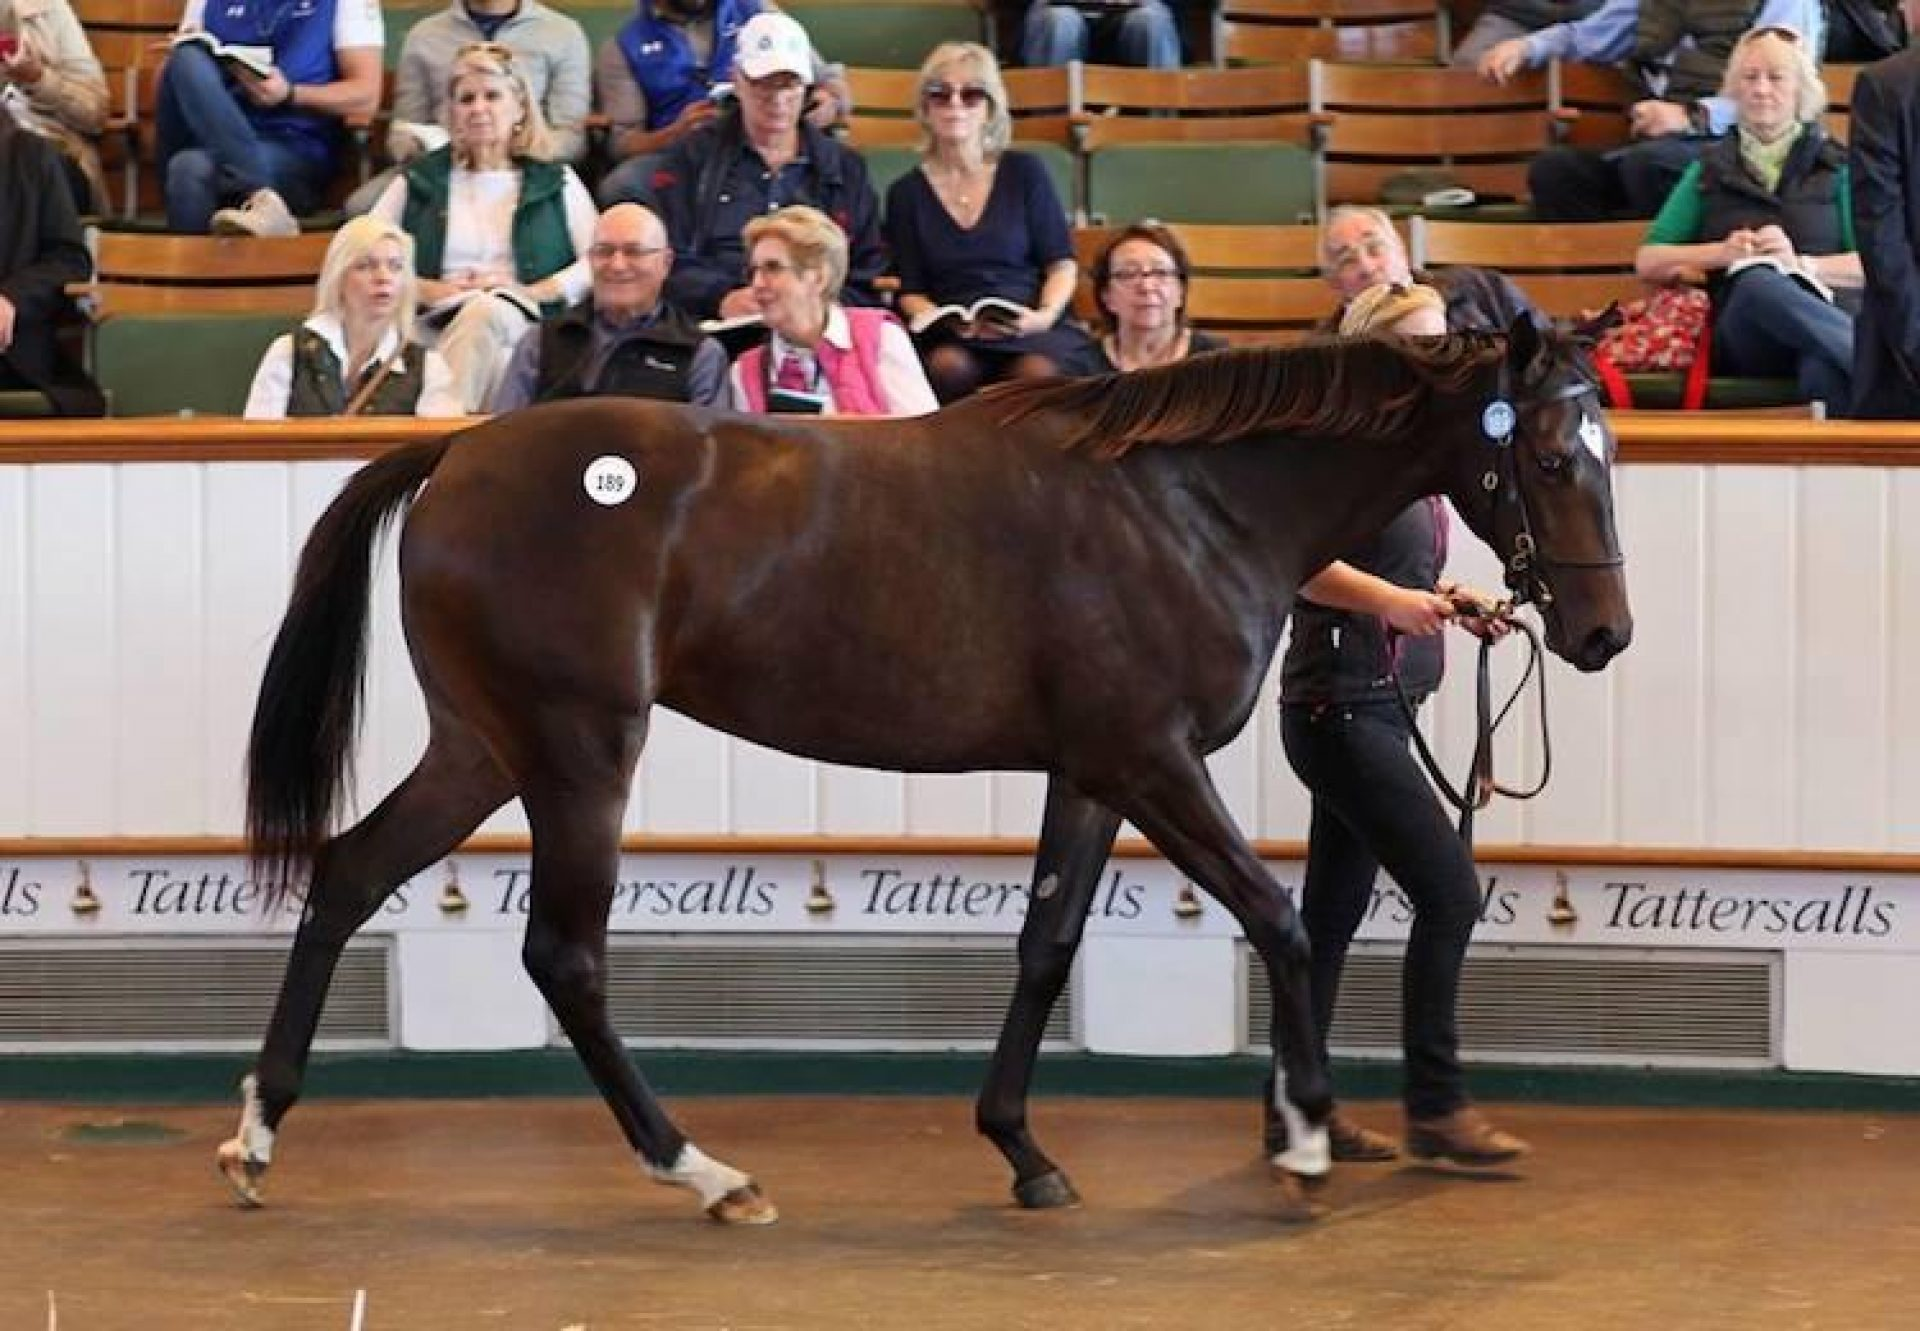 Galileo ex Wannabe Better yearling filly selling for 3.4 million guineas